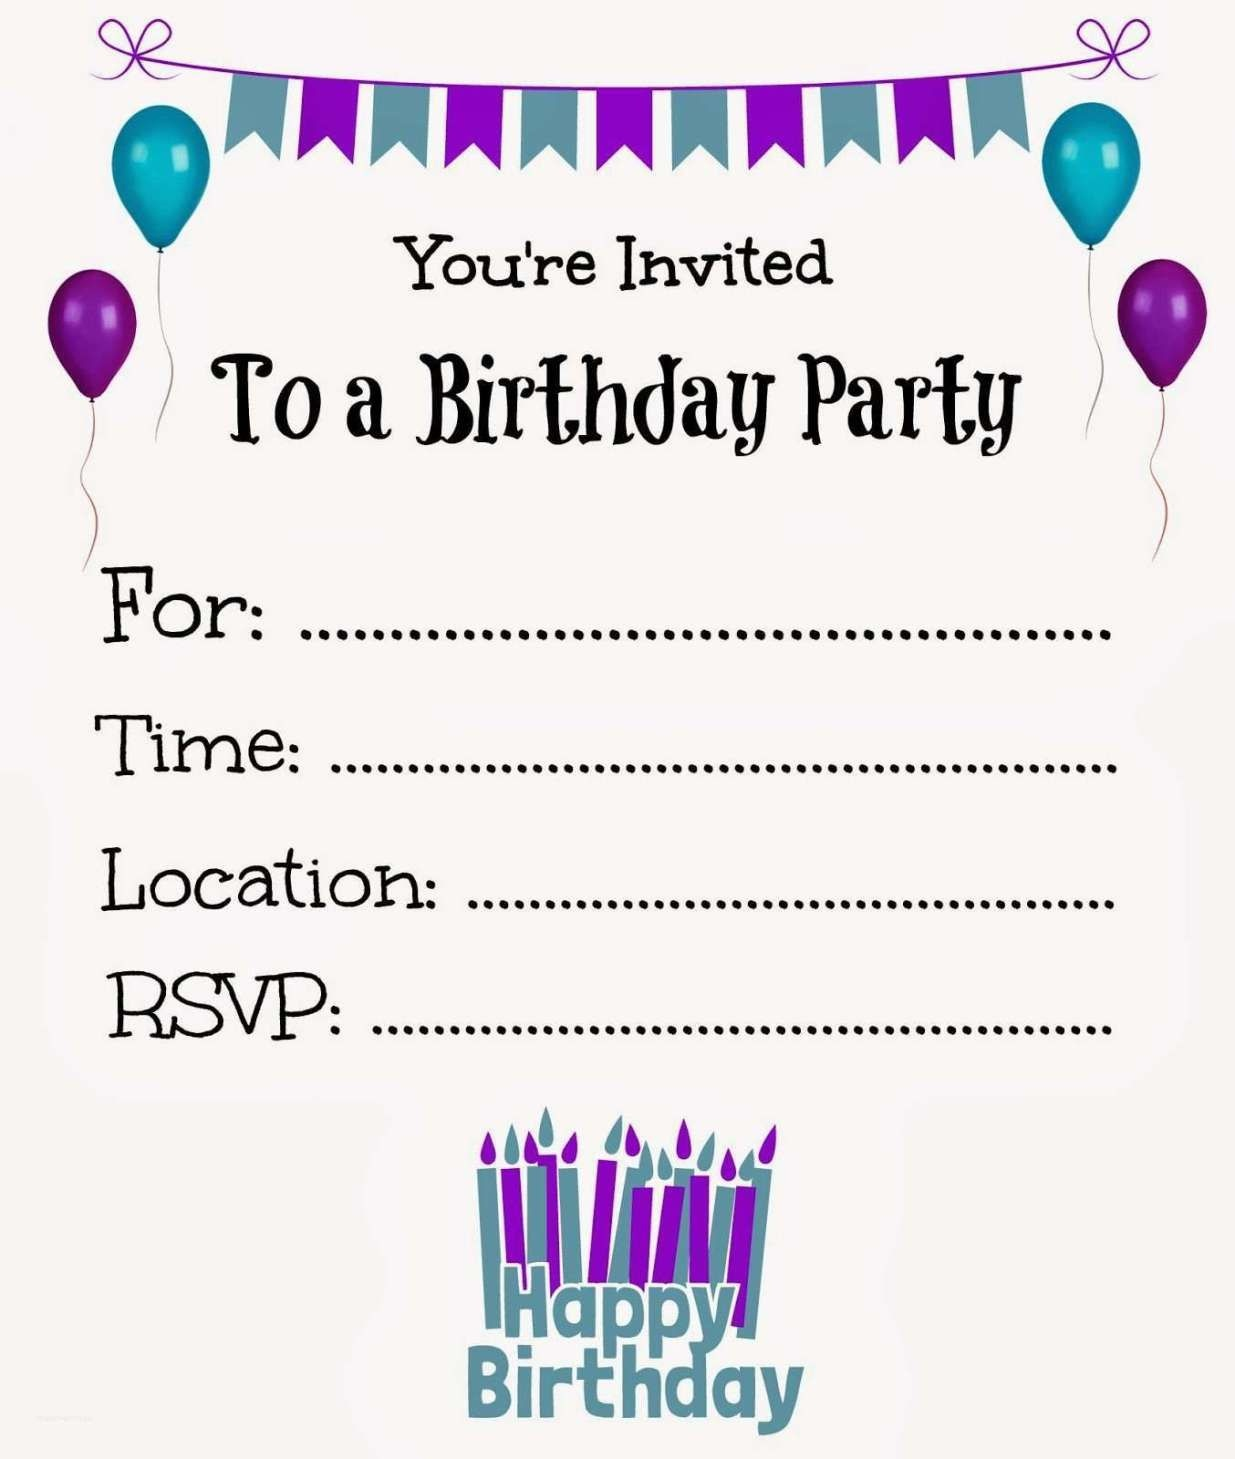 New Free Online Printable Birthday Party Invitations | Online - Make Your Own Printable Birthday Cards Online Free